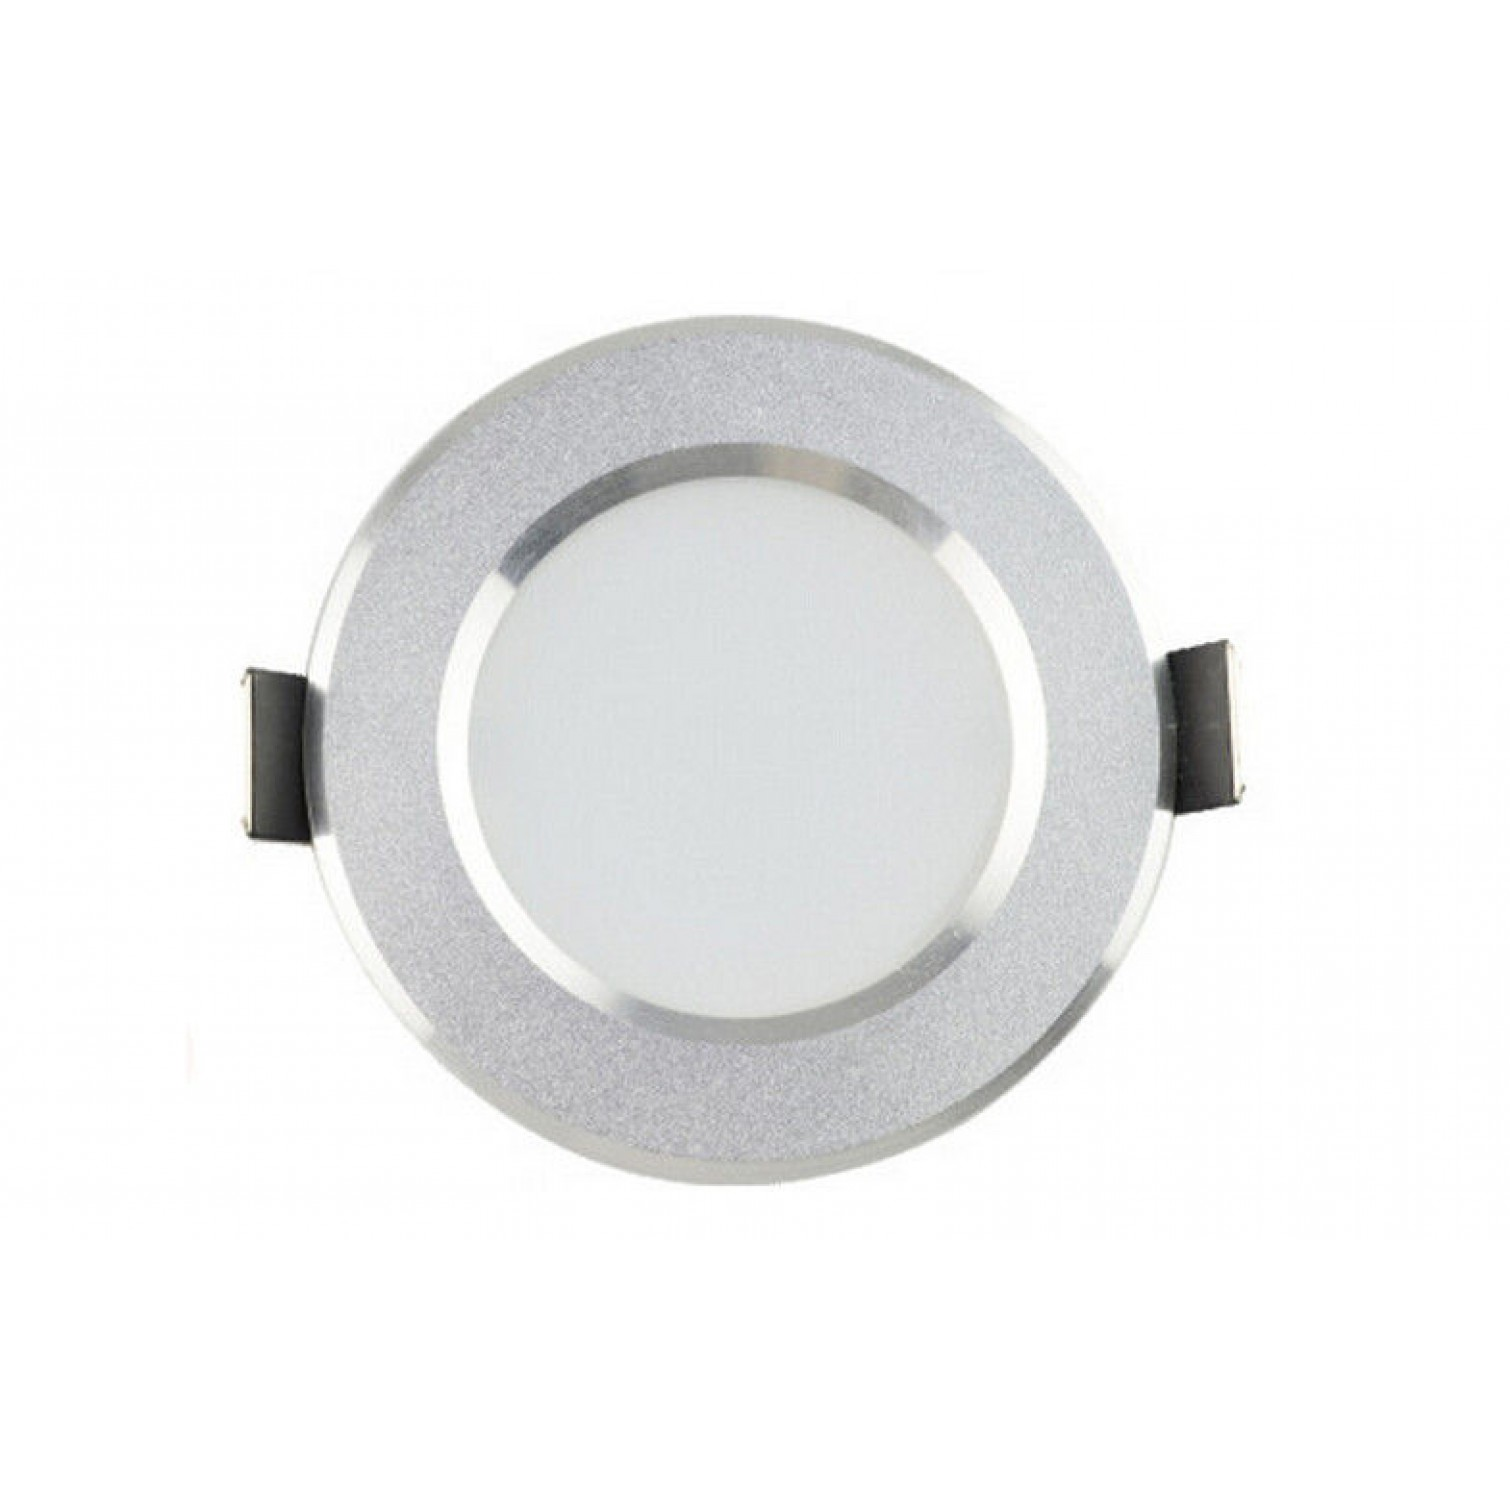 ojo-de-buey-led-5w-borde-blanco-110v-3colores-dimeable-35plgs-diametro